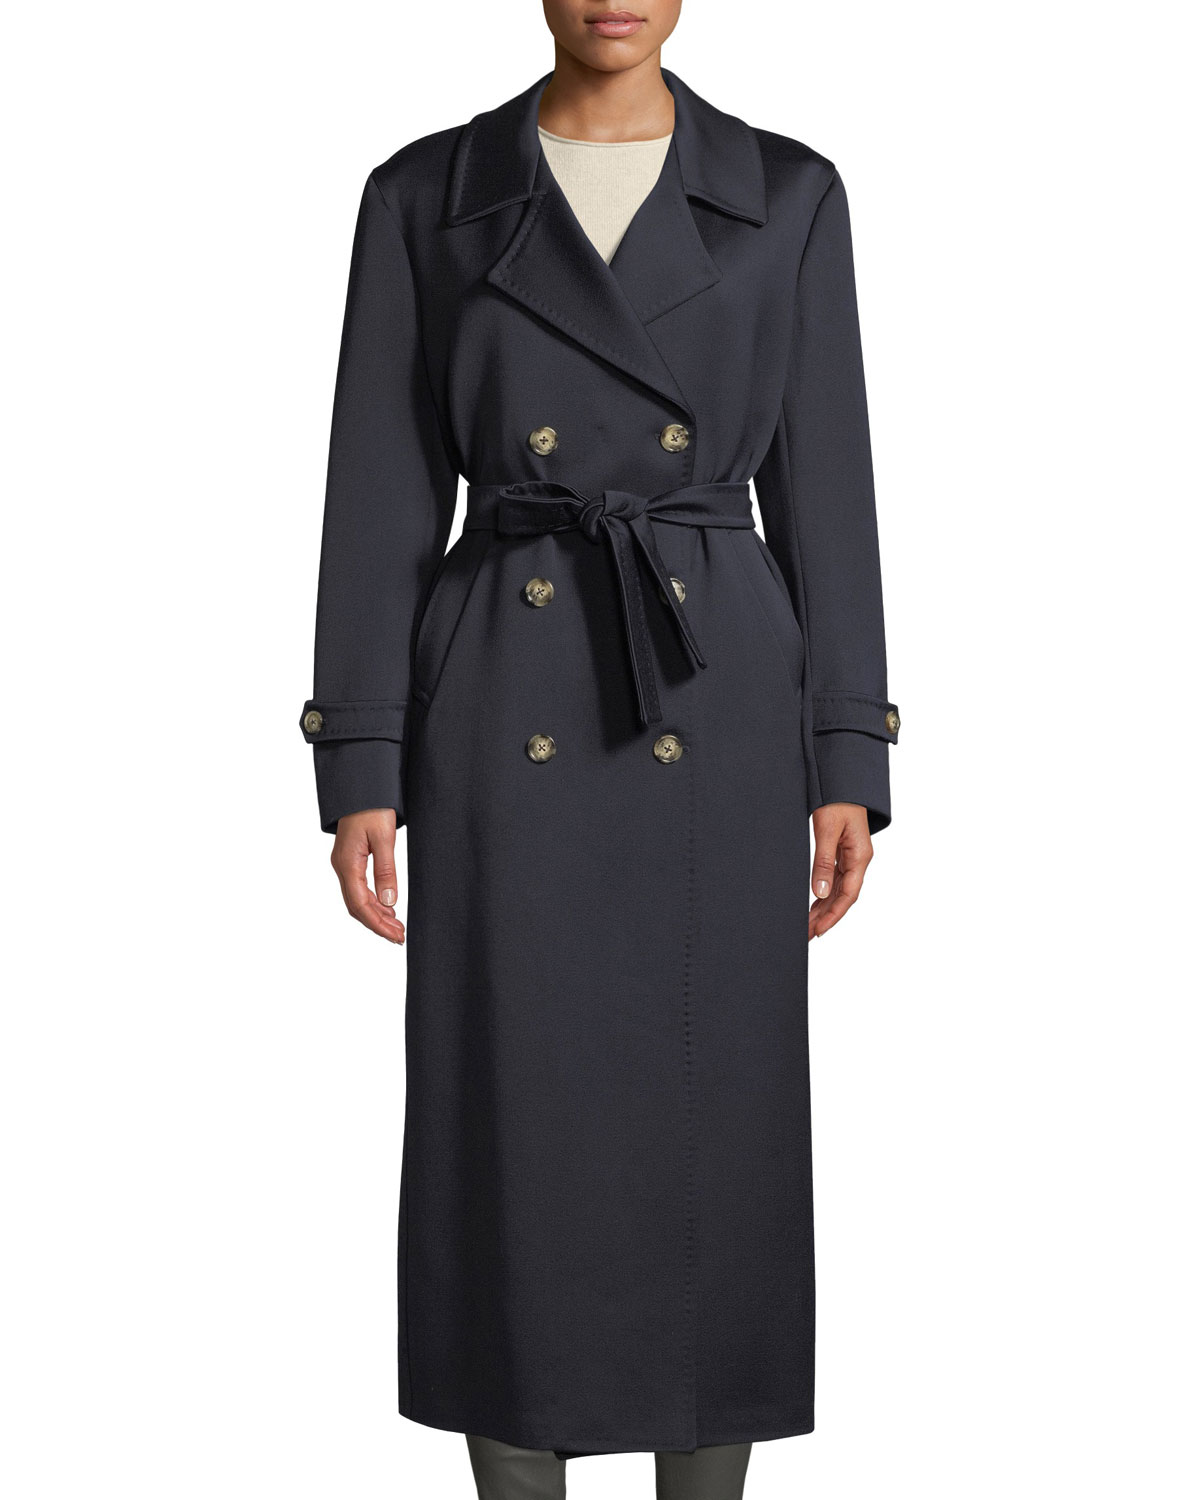 GIULIVA HERITAGE THE CHRISTIE DOUBLE-BREASTED SATEEN WOOL TRENCH COAT